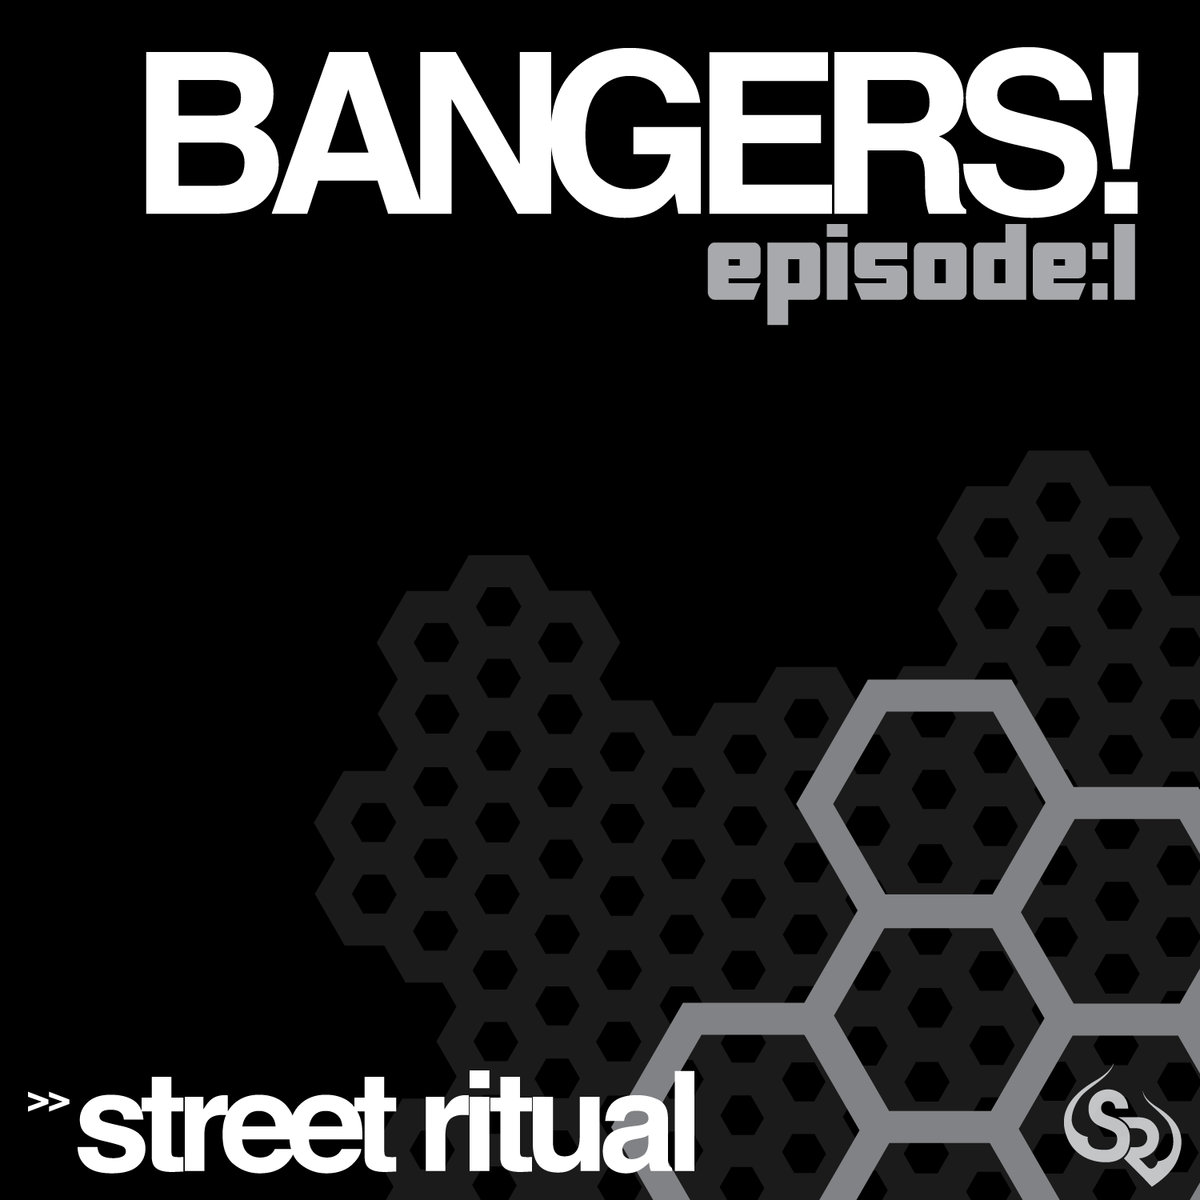 Knowa Knowone - Afrotech @ 'Various Artists - Bangers! Episode:1' album (bass, electronic)